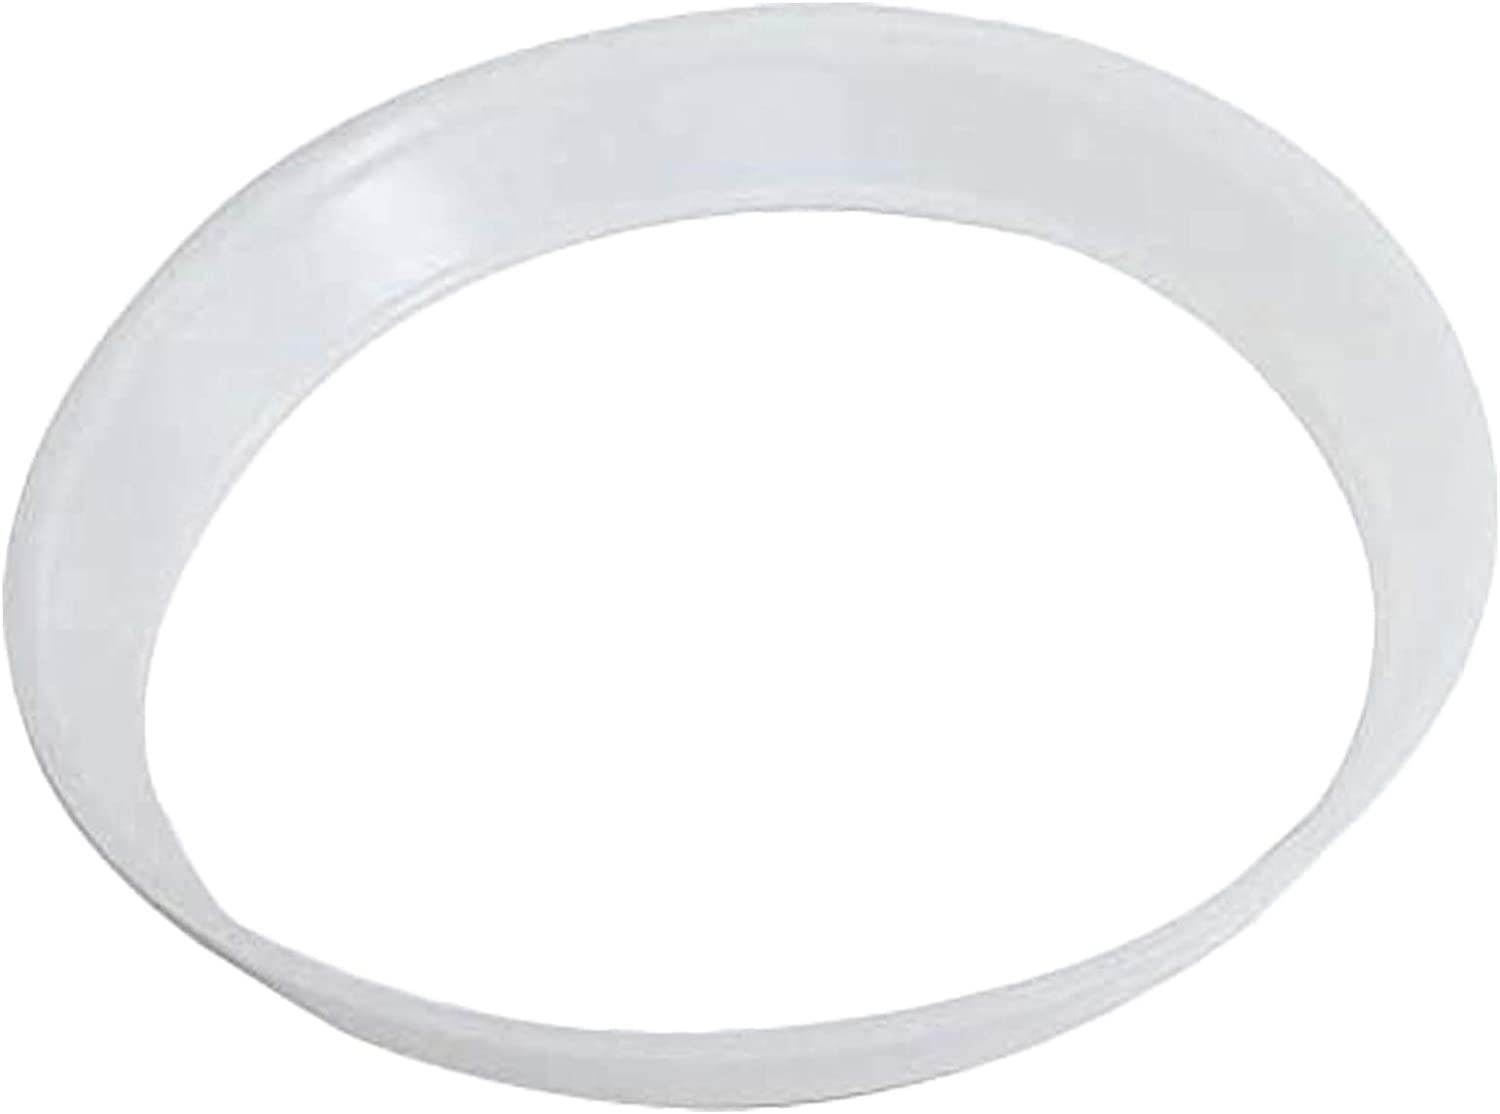 21002026 Snubber Ring by PartsBroz - Compatible with Whirlpool Washers - Replaces WP21002026, AP6005786, 21002026, 21001161, 35-2357, 35-3699, 35-3788, PS11738845, WP21002026VP